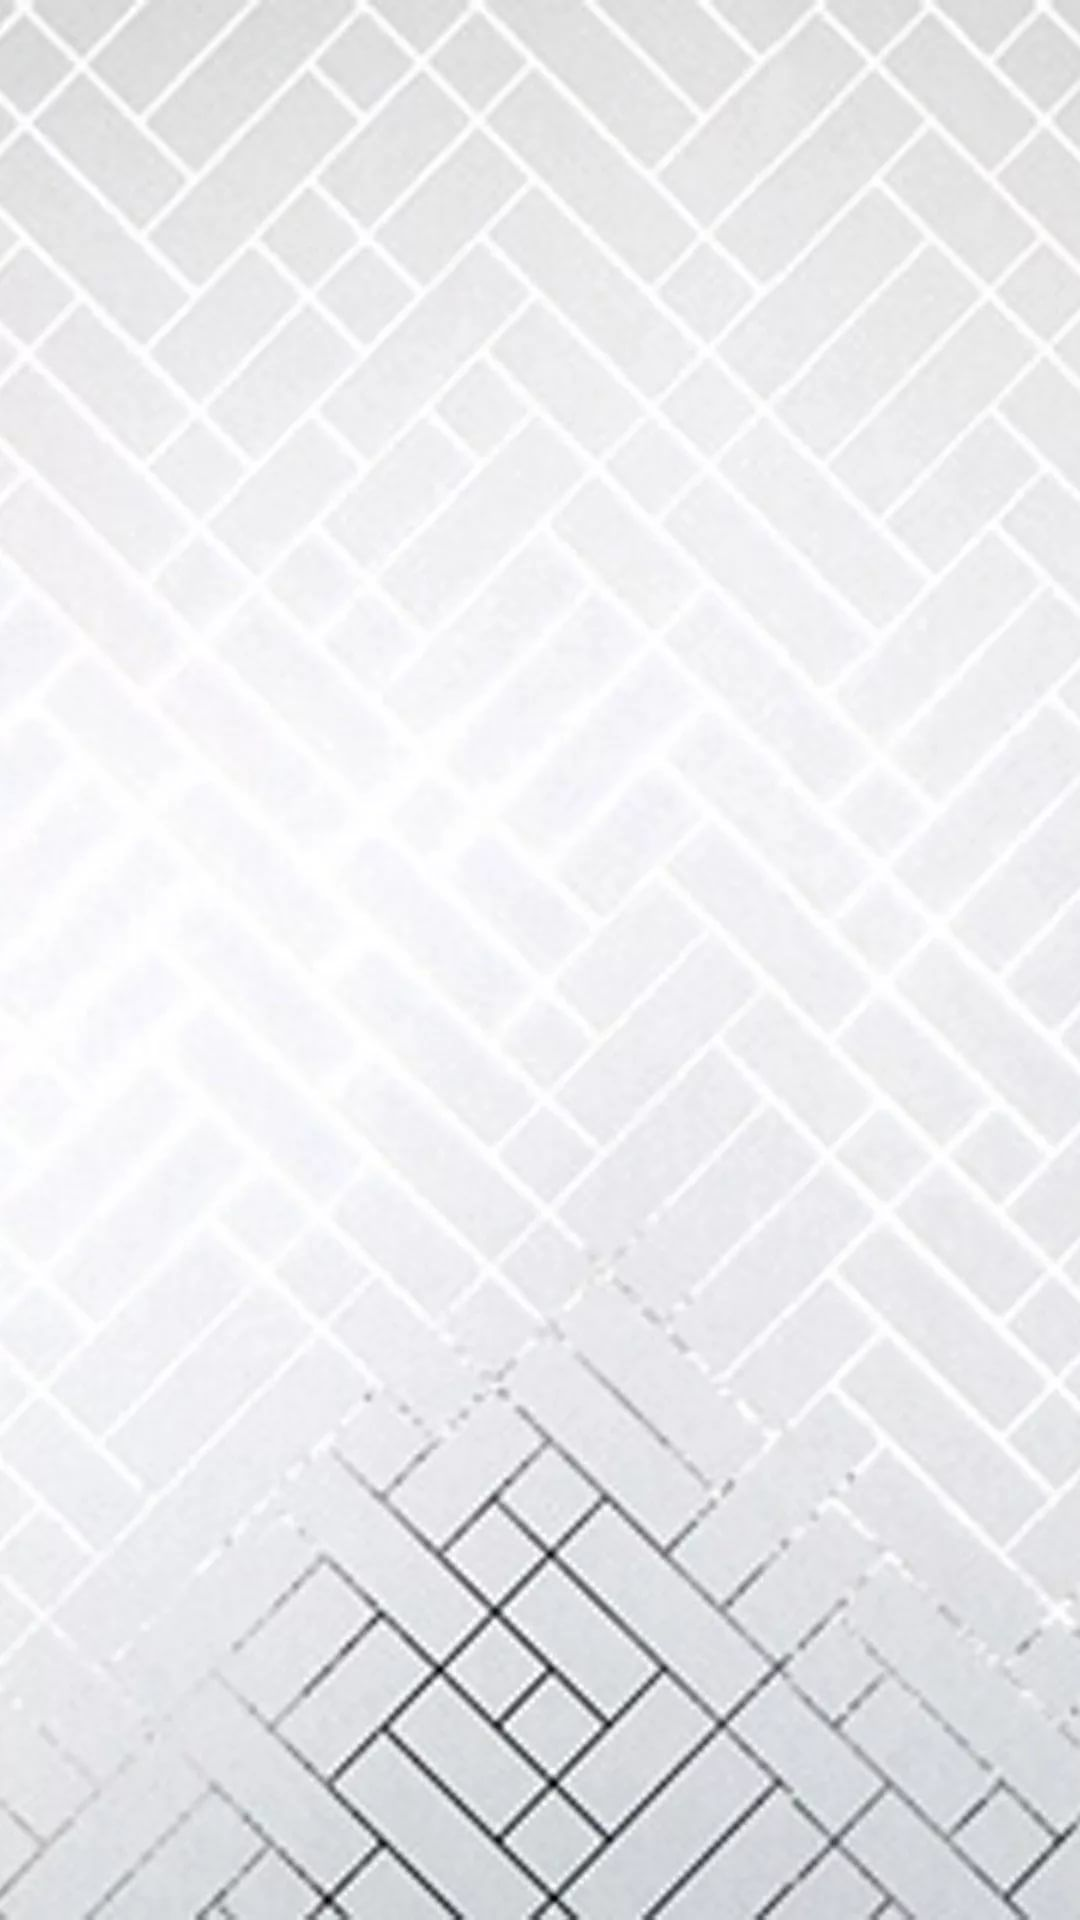 White wallpaper for Android